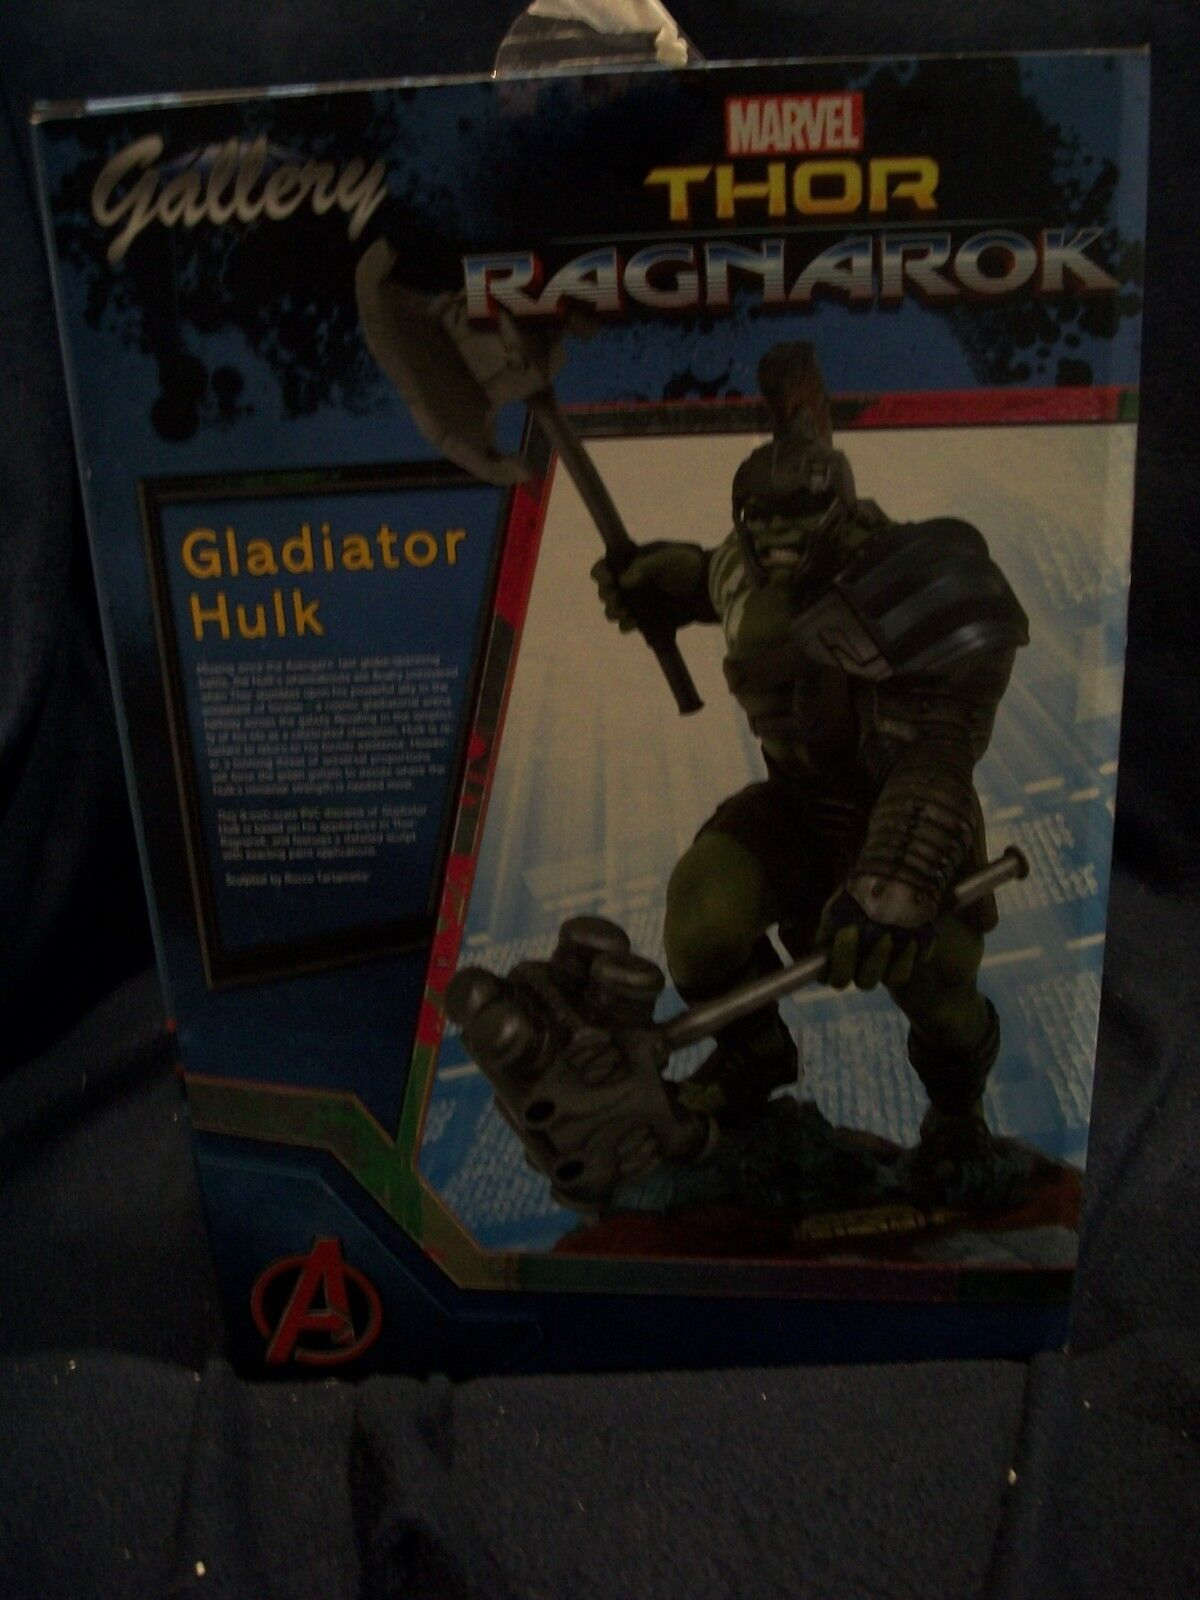 GLADIATOR HULK - Thor Ragnarok PVC Diorama - Marvel Gallery - Diamond Select